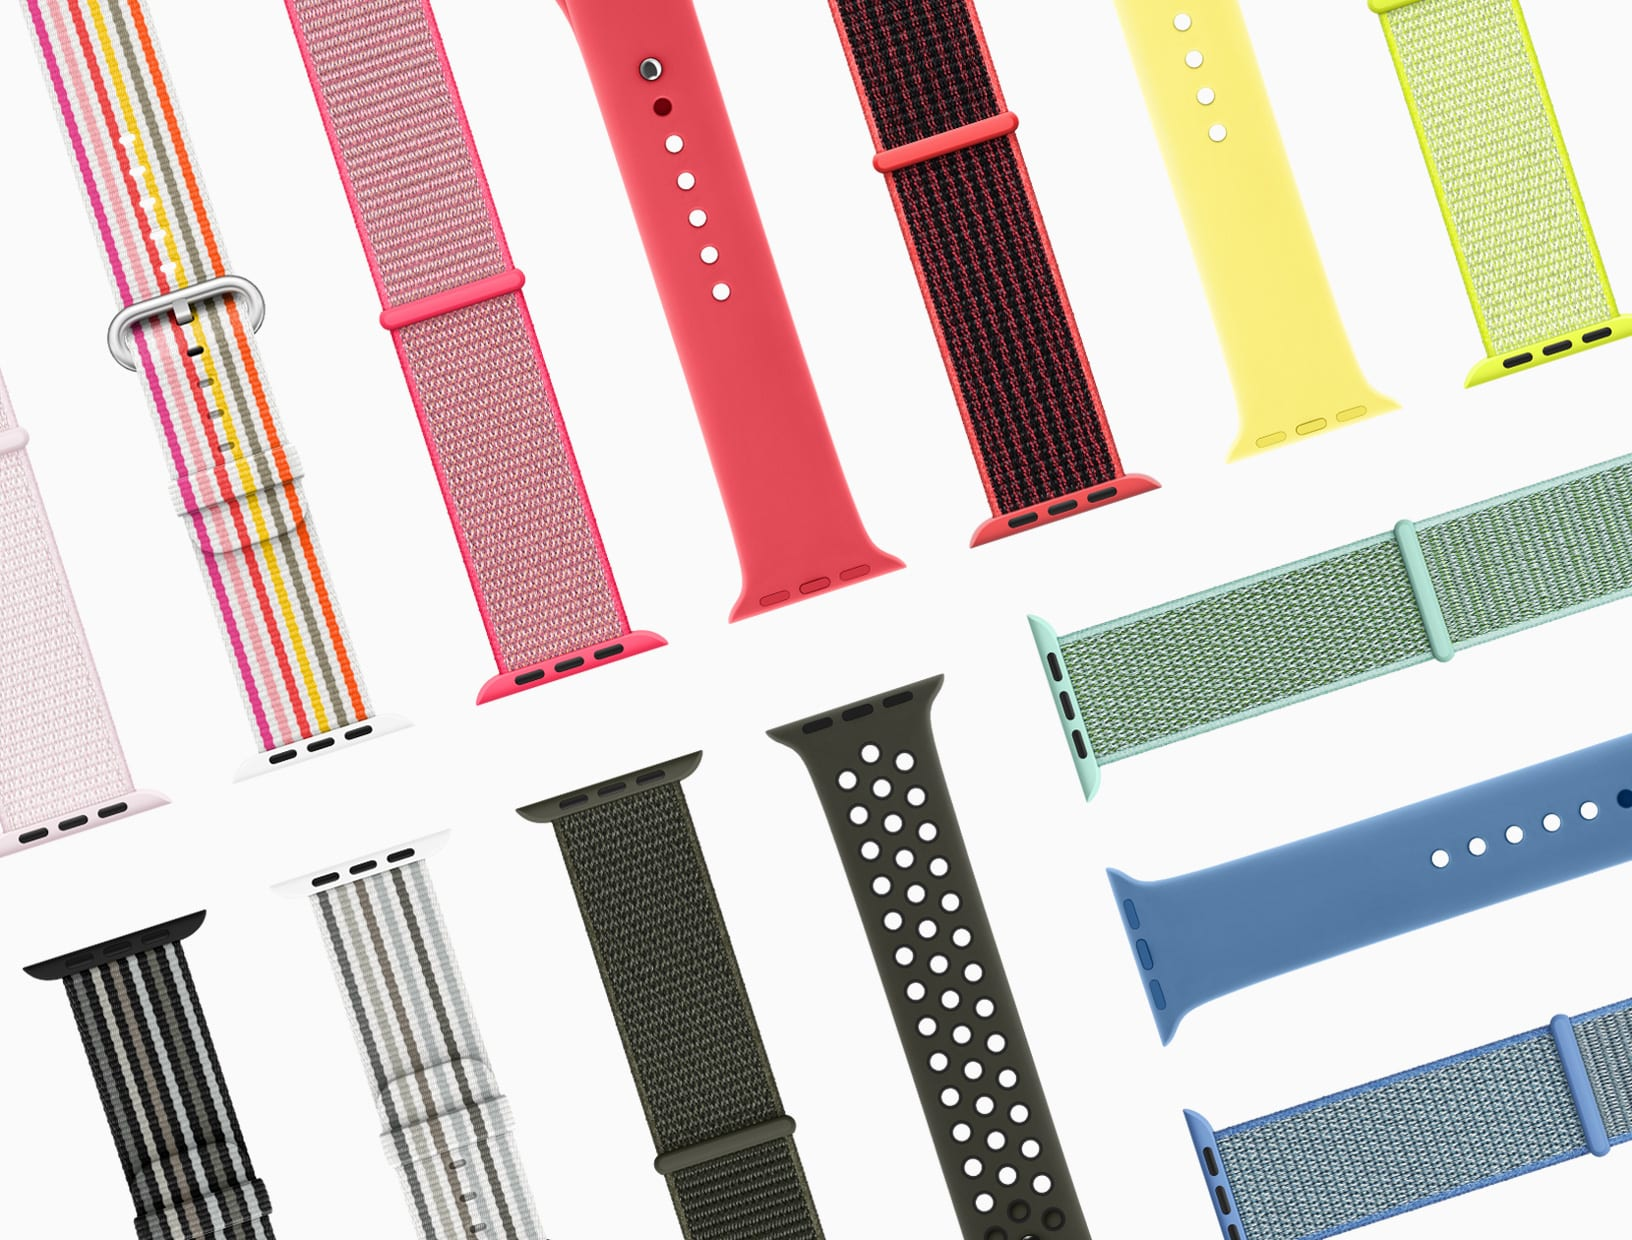 apple watch series3 springbands 032118 - Nový iPad mini nebude, Apple Watch 4 si zachovajú kompatibilitu s remienkami